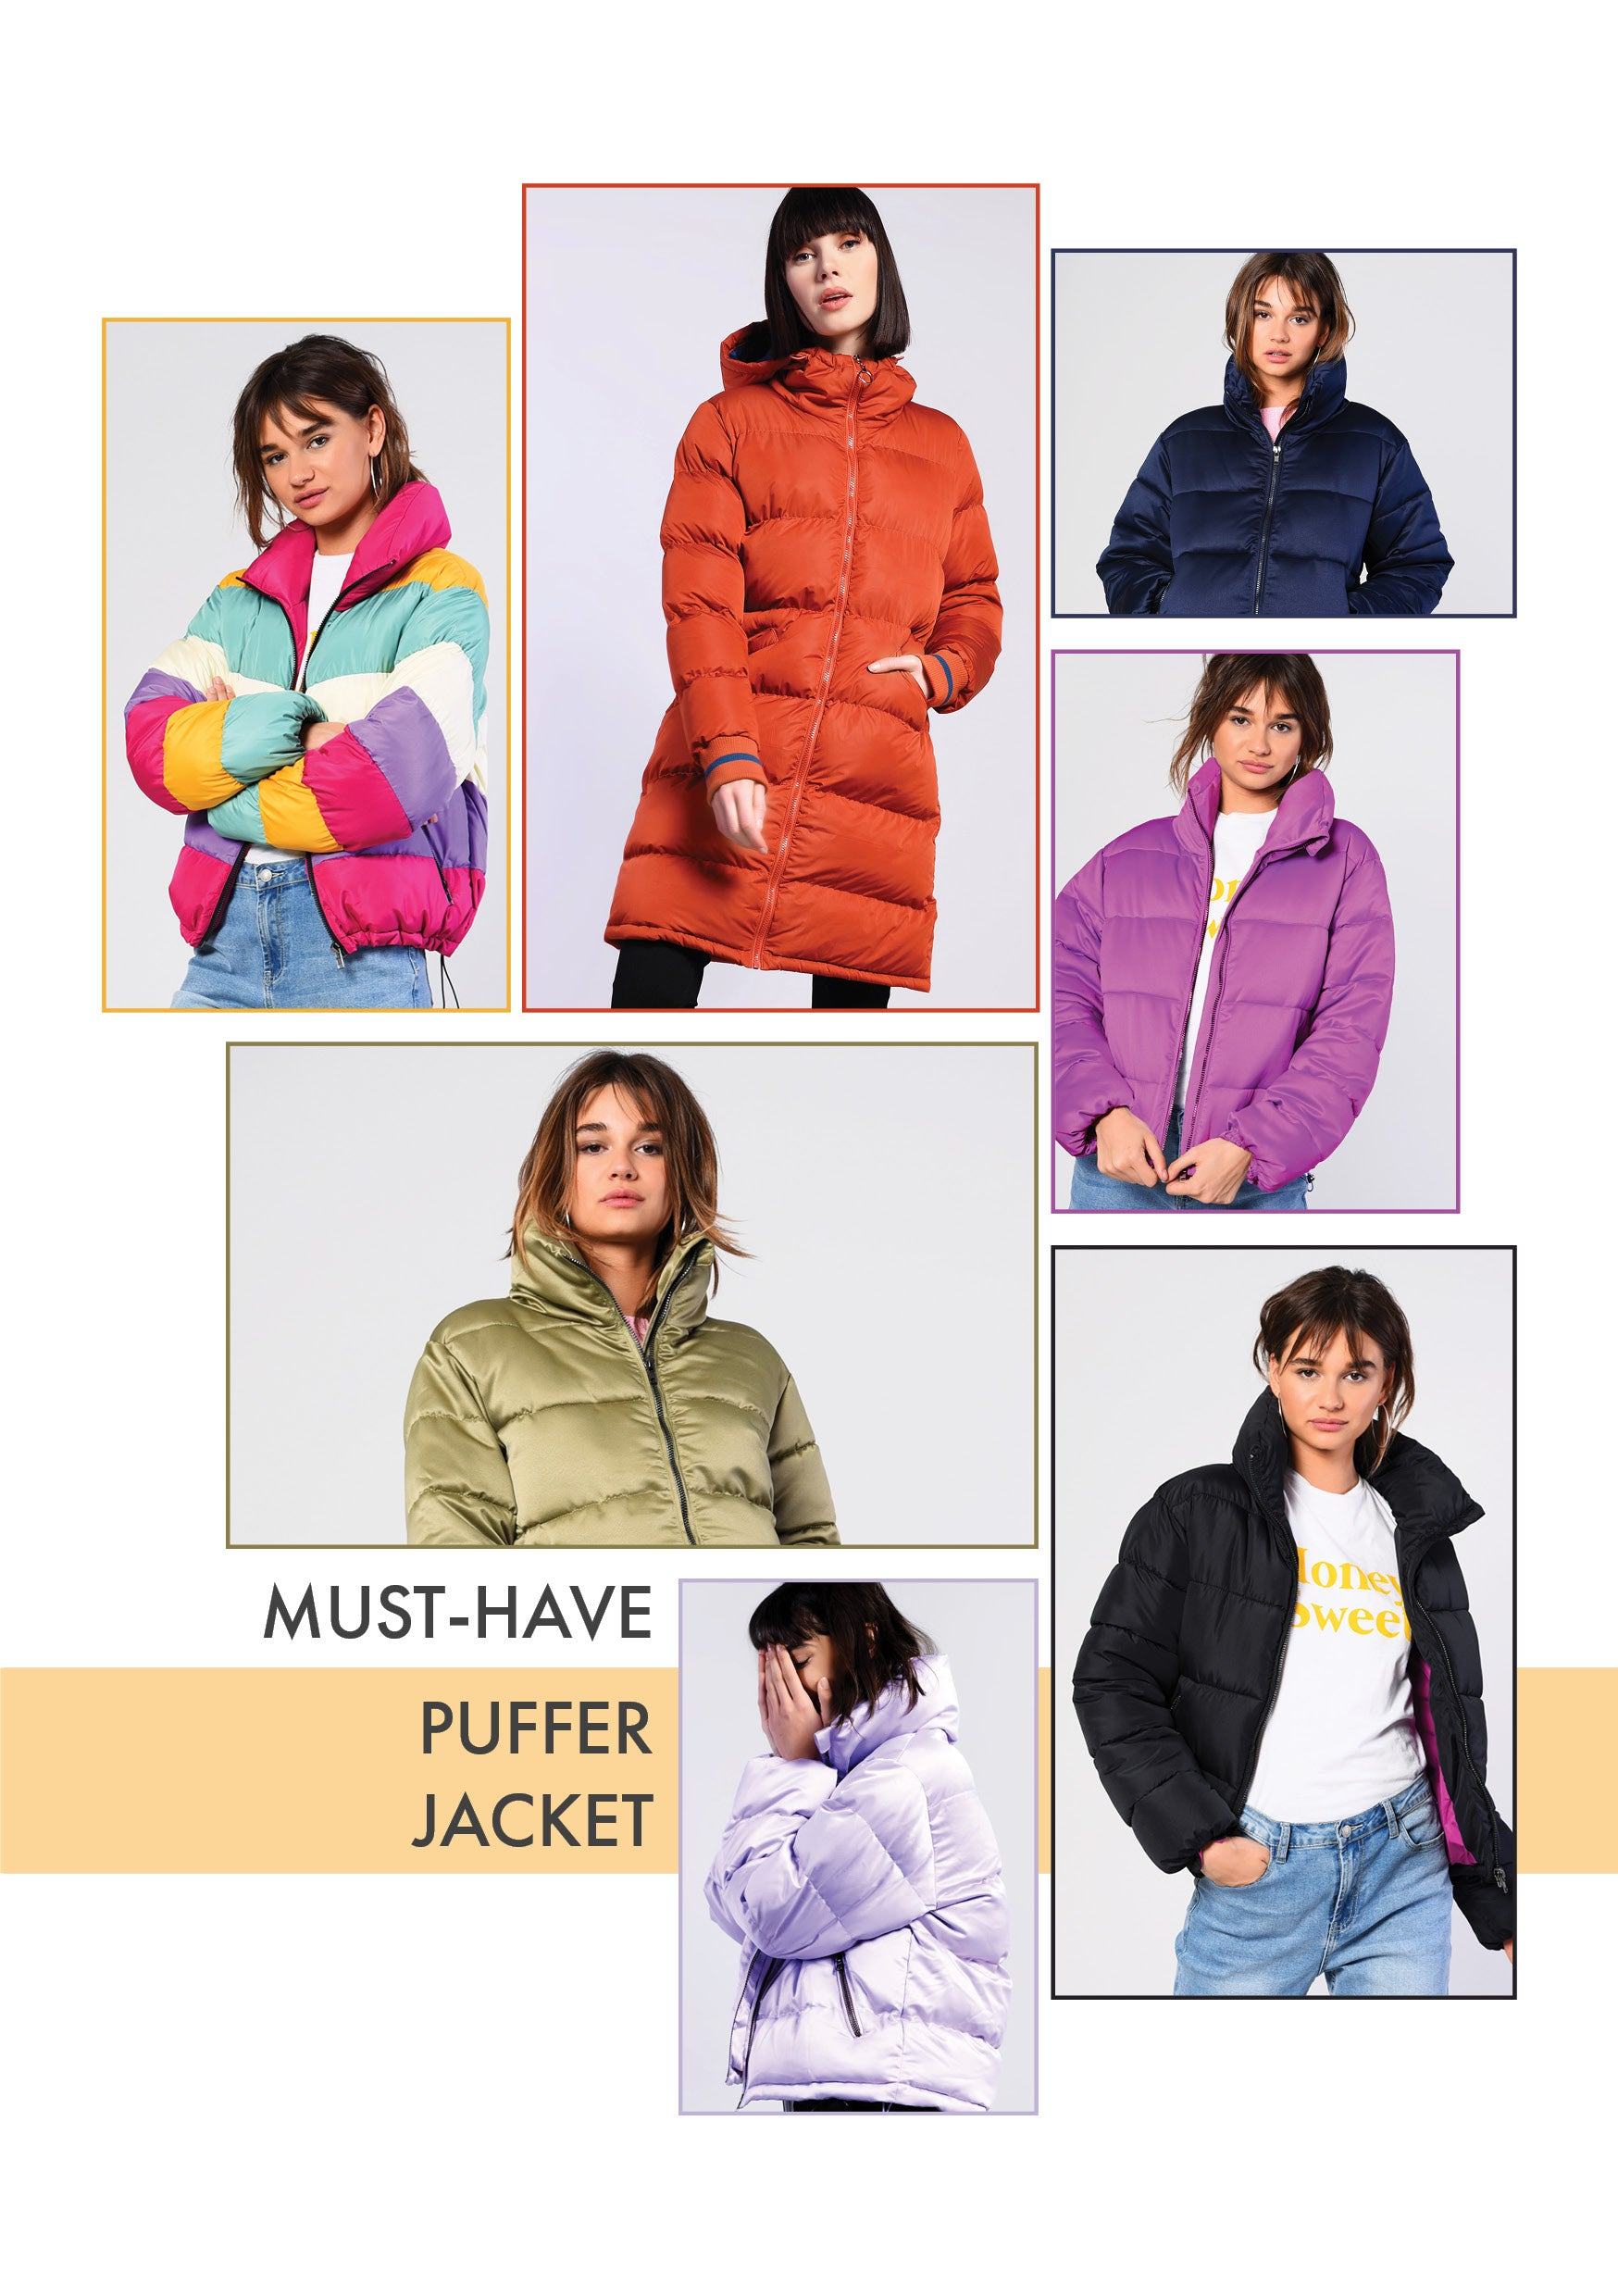 MUST HAVE PUFFER JACKET